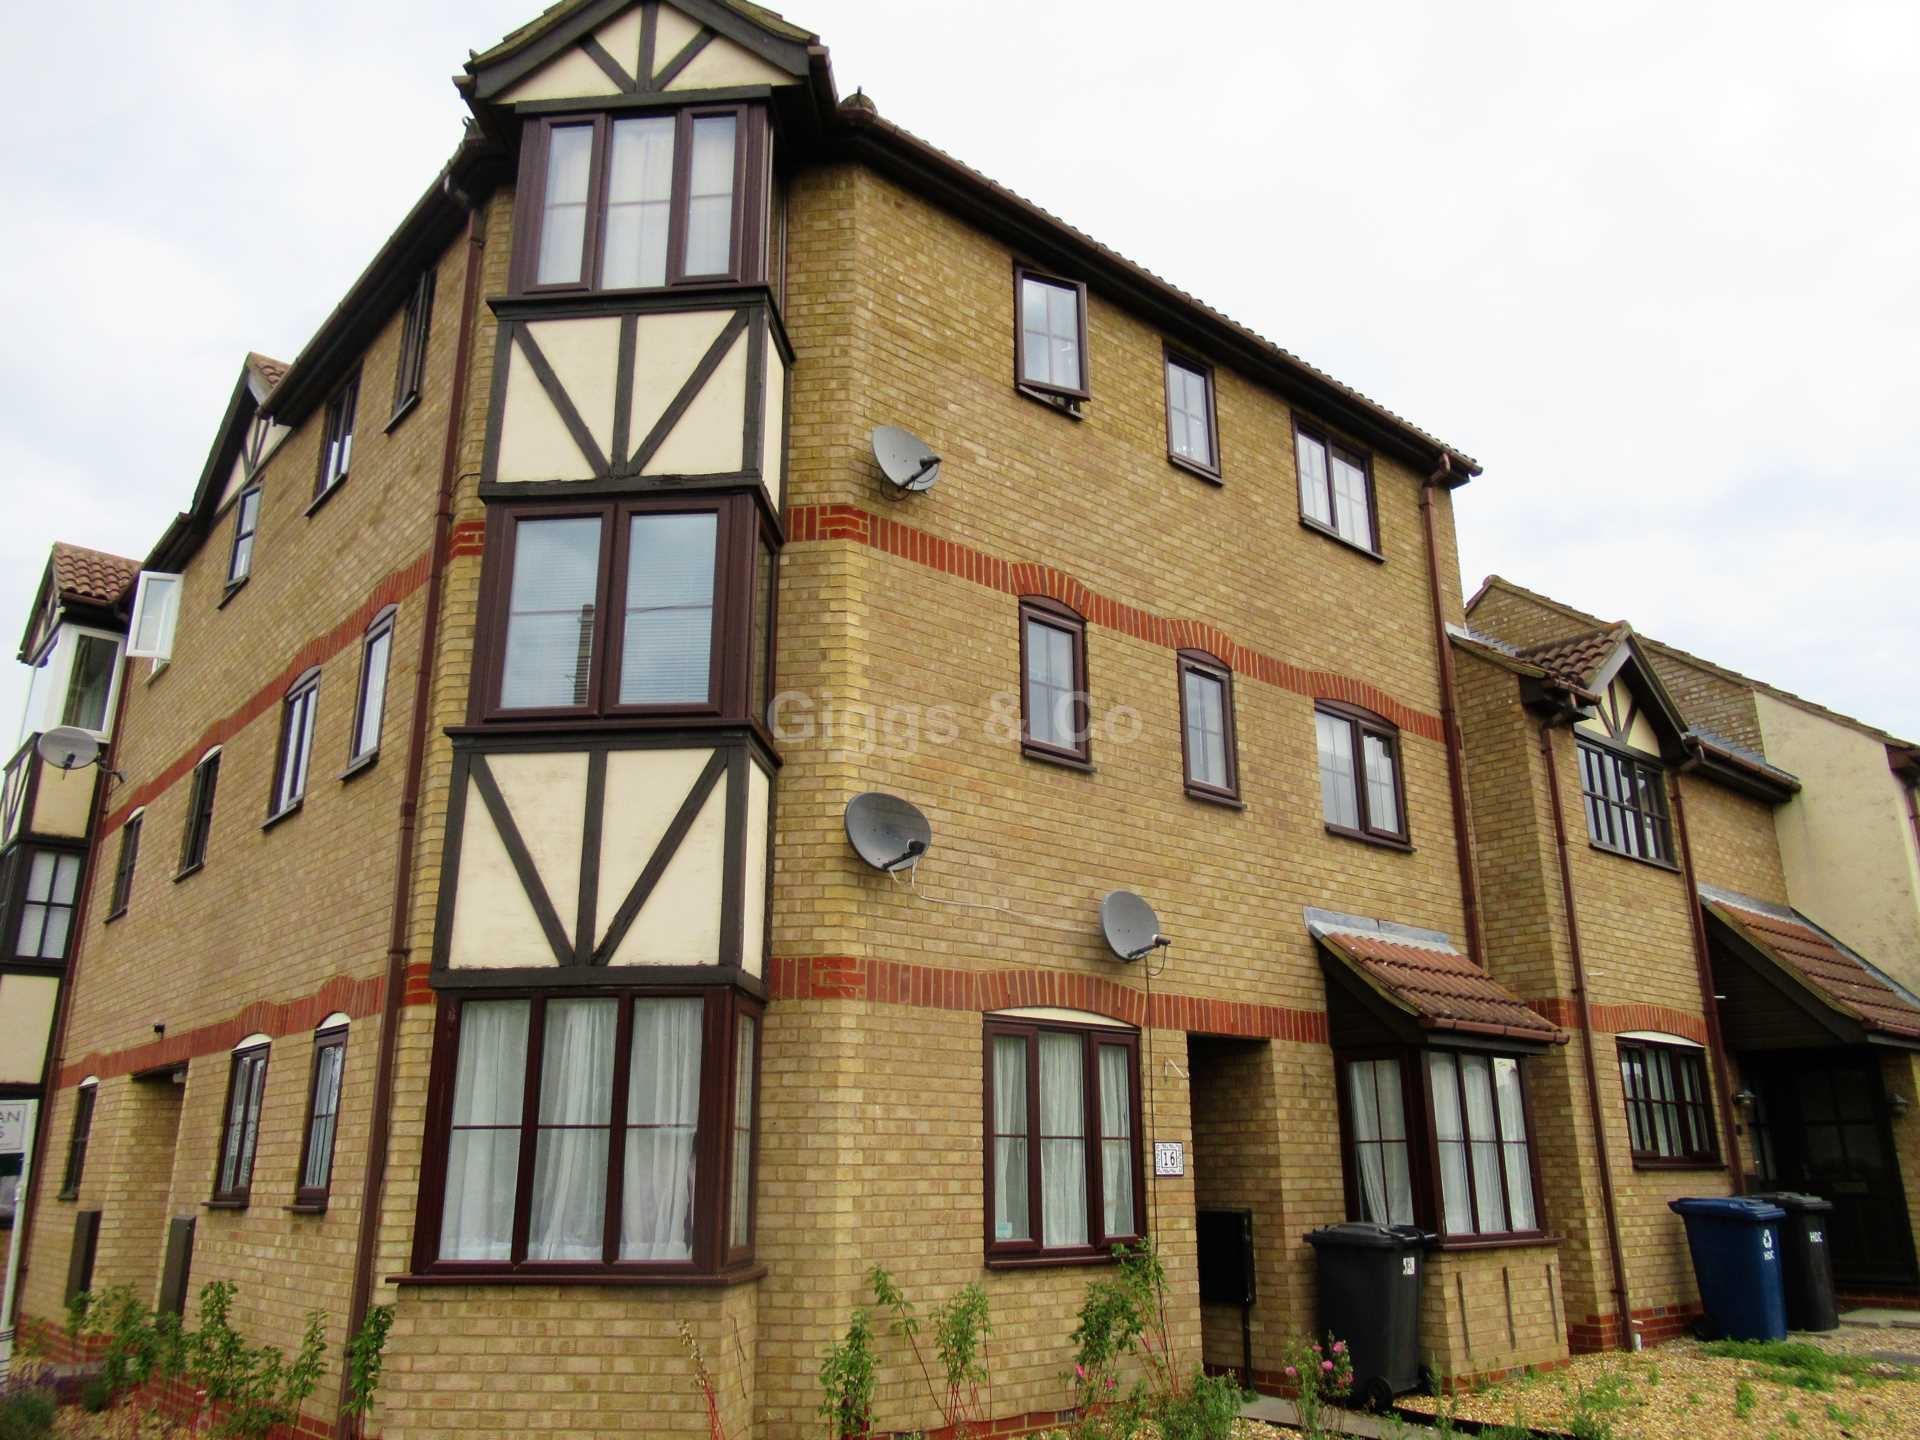 2 bed apartment to rent in Cromwell Court, Eynesbury, PE19